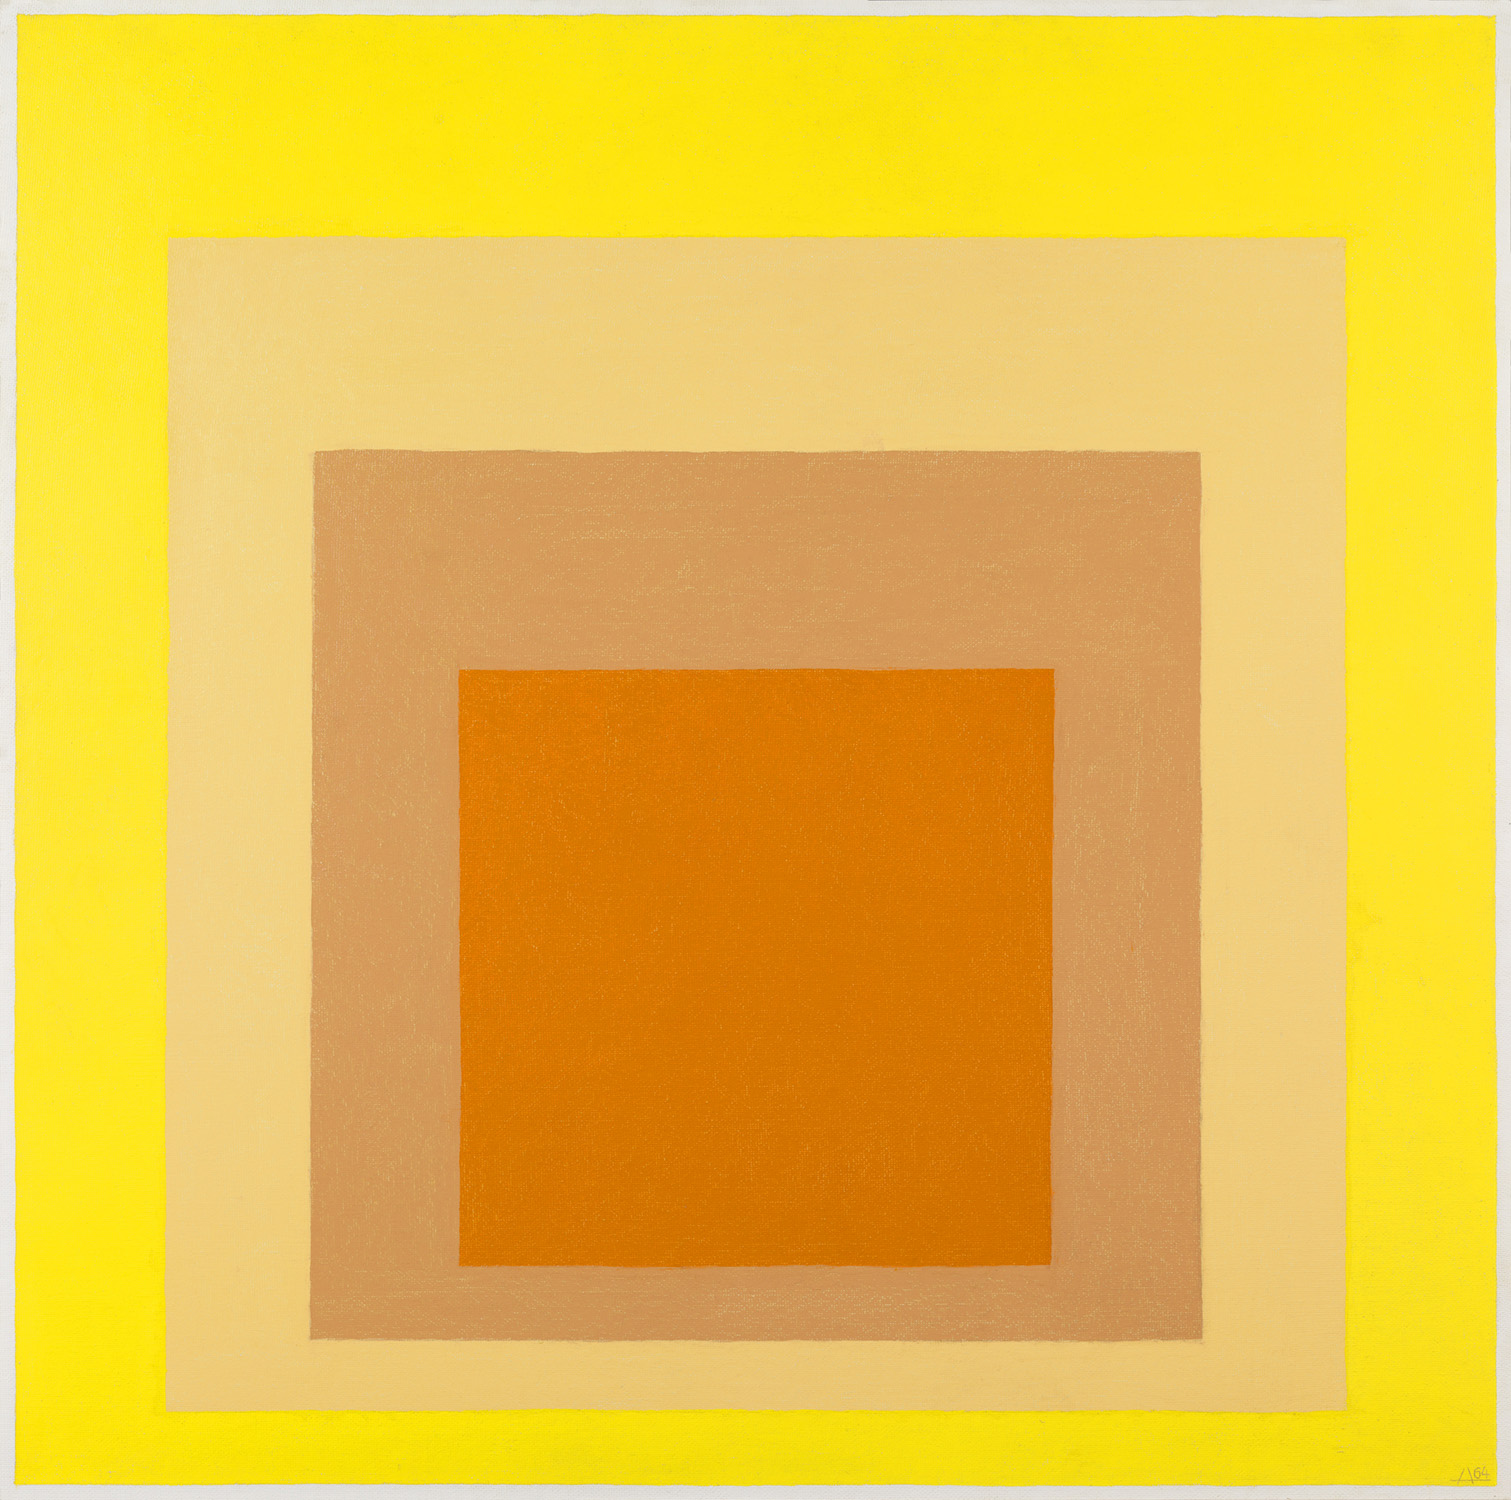 Joseph Albers (1888-1976), Homenage al cuadrado, 1964, Oil on masonite, 100 x 100 cm